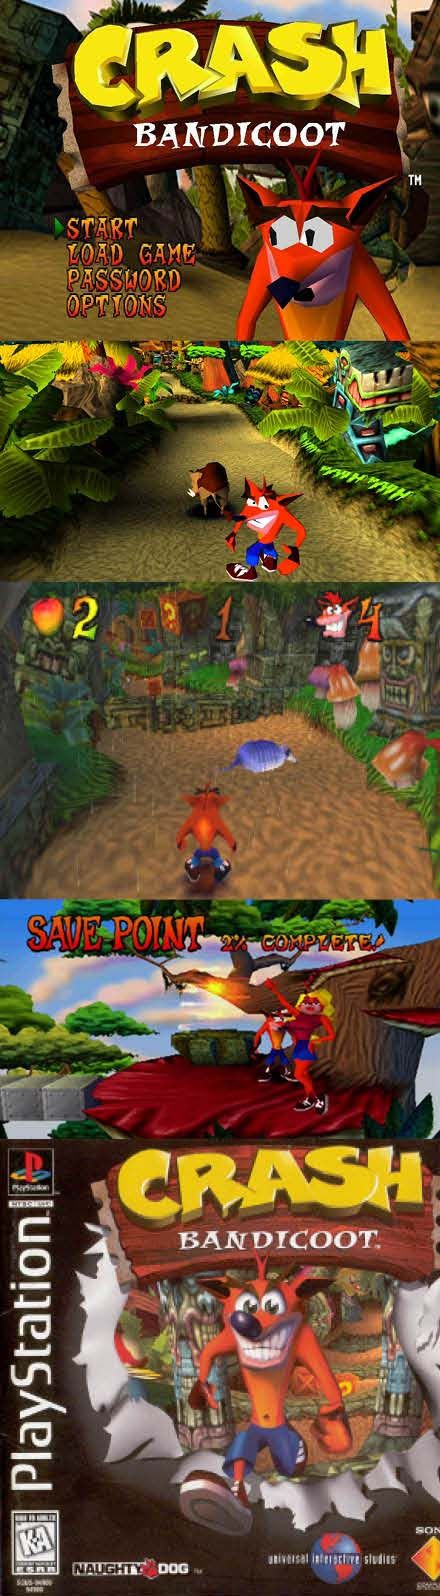 retrogamer when crash bandicoot first came out it was holding its